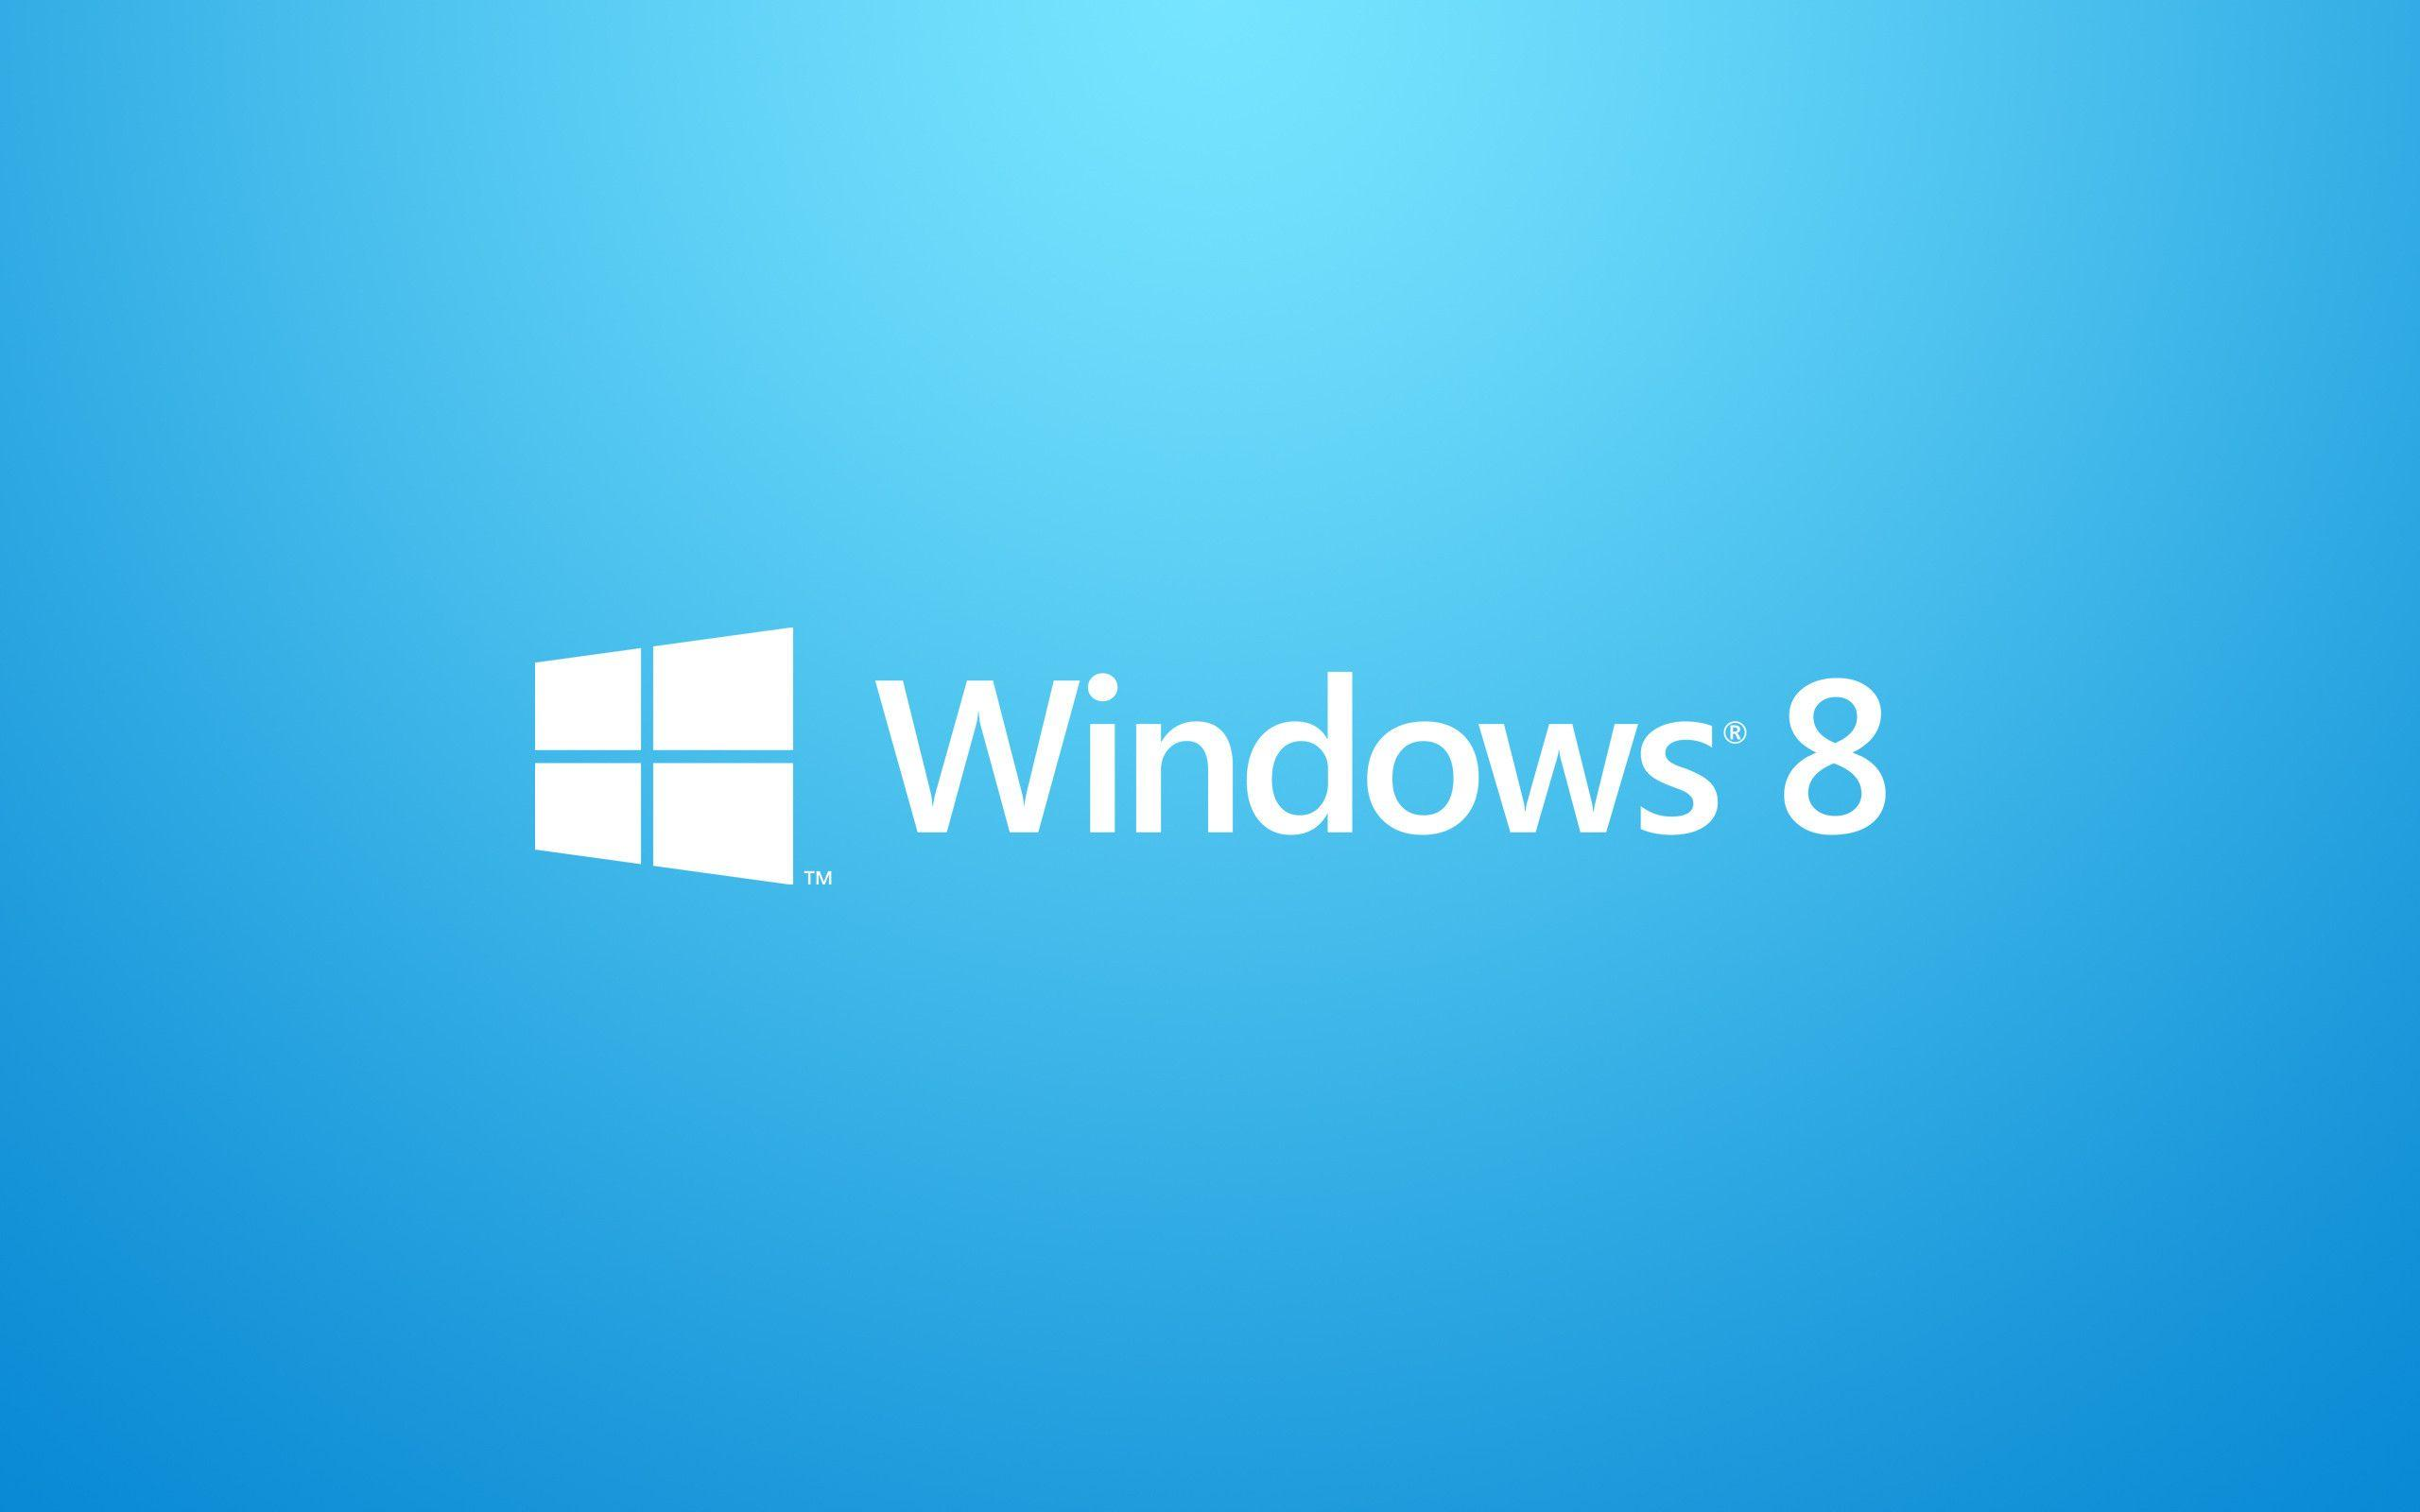 Windows 8 Wallpapers Pack_3 by sagorpirbd